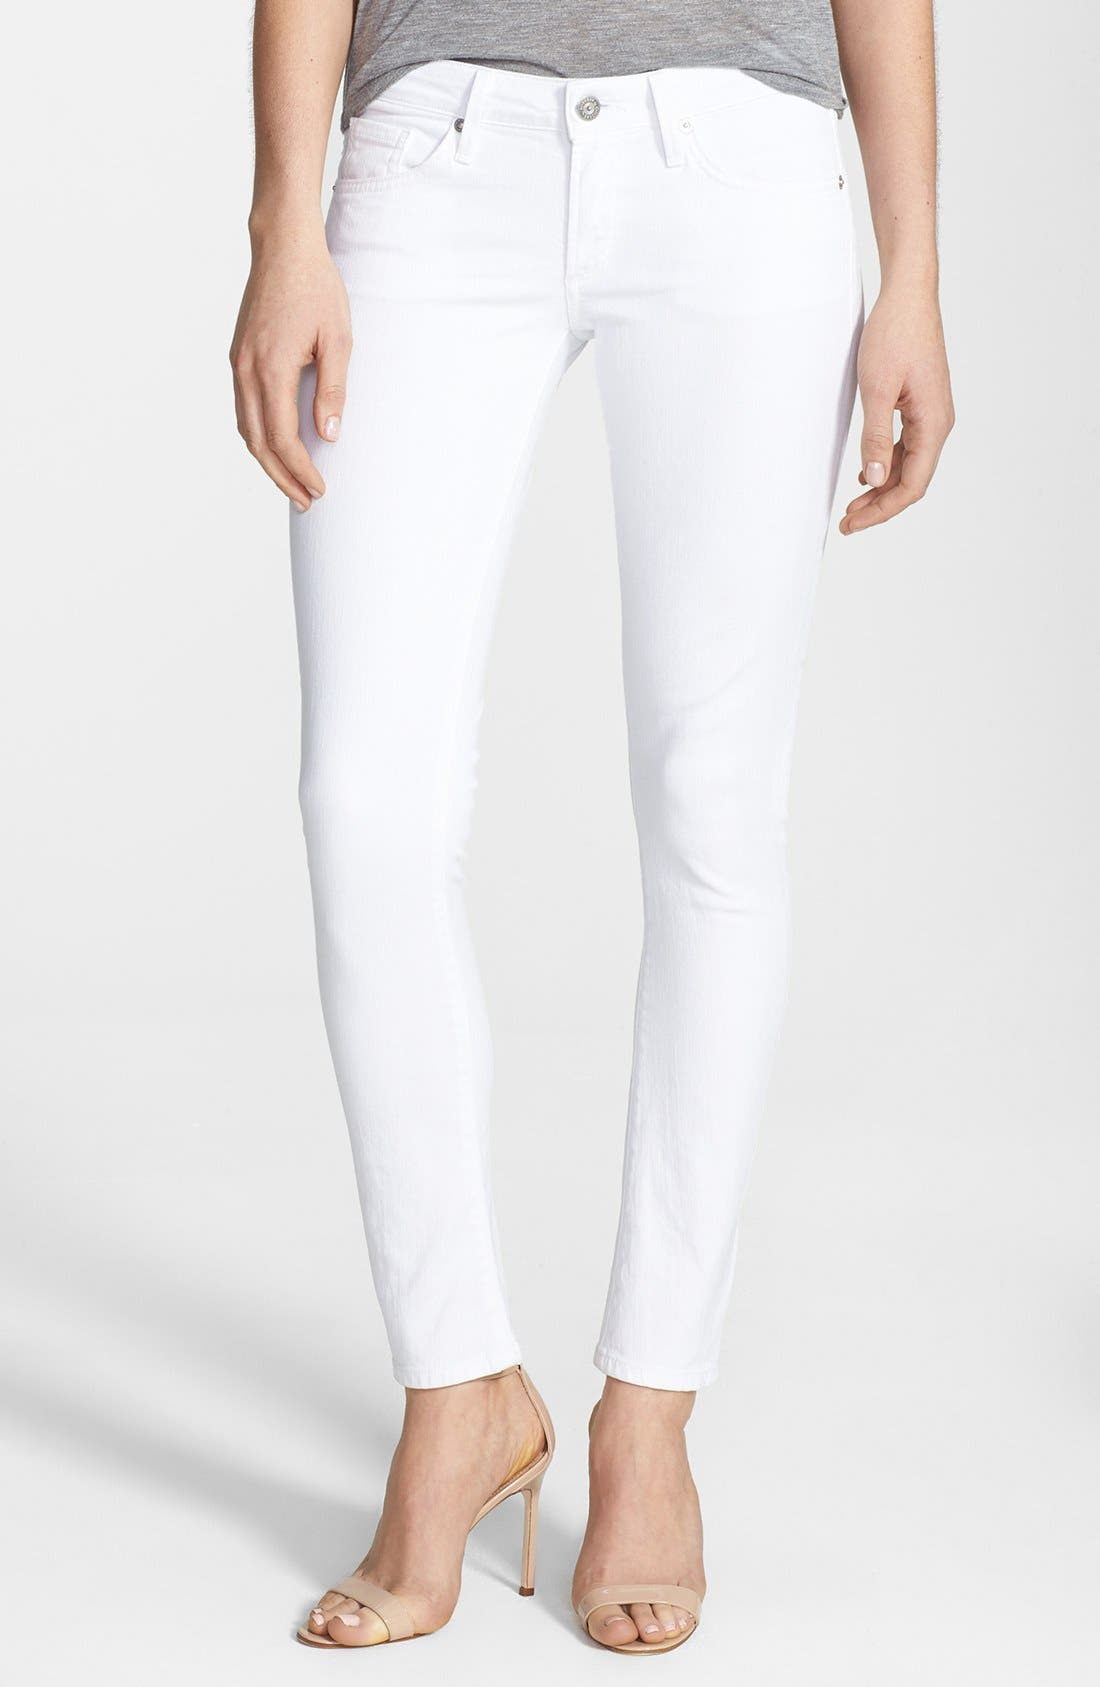 Main Image - Citizens of Humanity 'Racer' Low Rise Skinny Jeans (Santorini White)